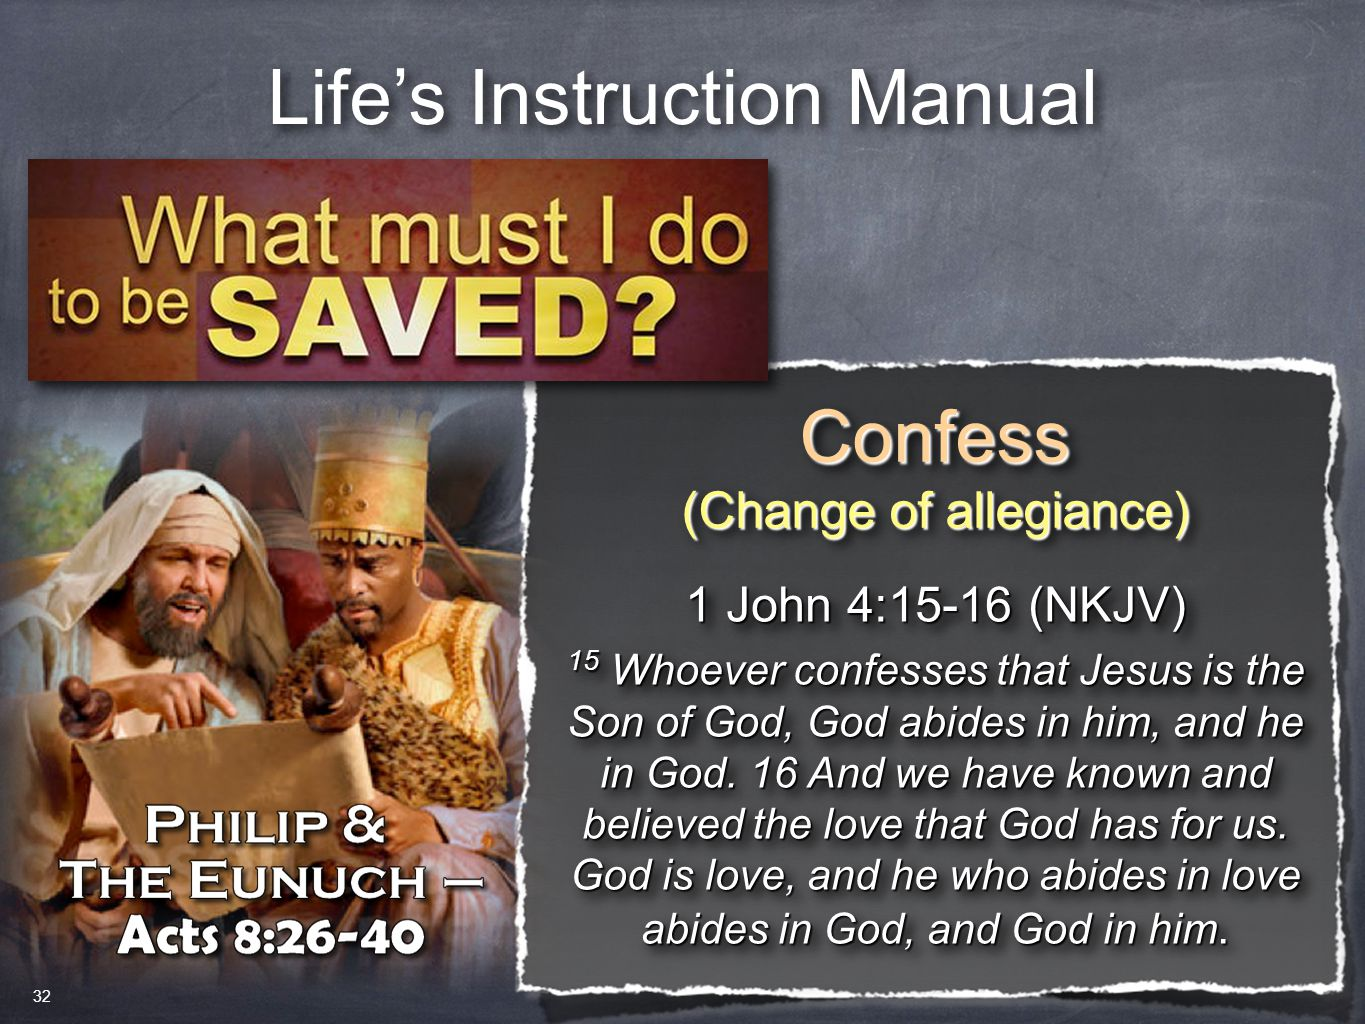 Life's Instruction Manual Confess (Change of allegiance) Confess 1 John 4:15-16 (NKJV) 15 Whoever confesses that Jesus is the Son of God, God abides in him, and he in God.